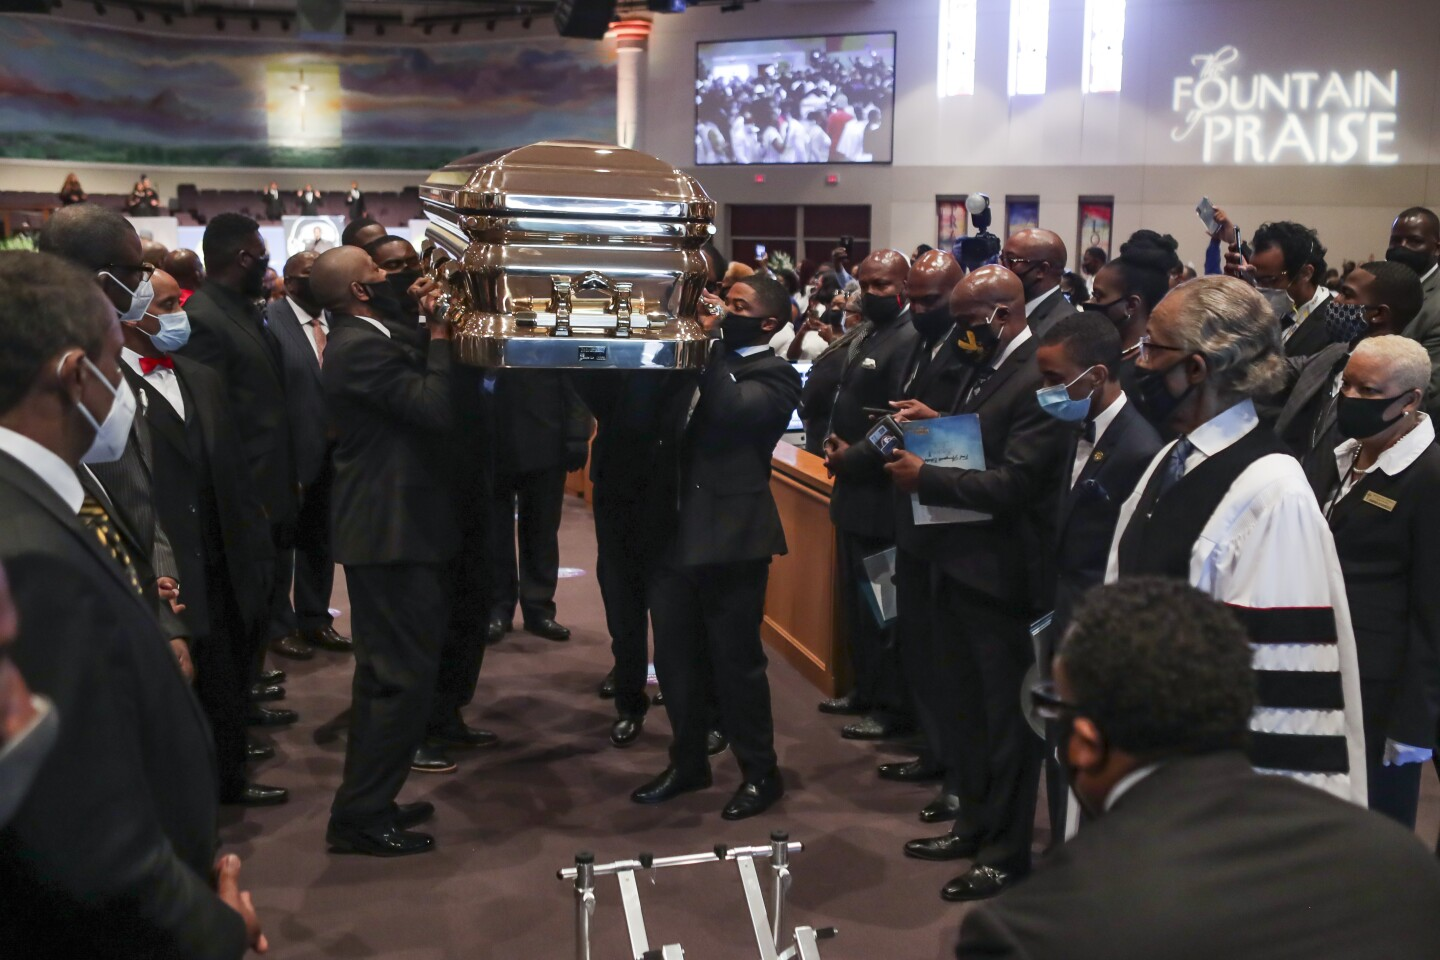 Pallbearers carry the casket following the funeral of George Floyd June 9, 2020, at The Fountain of Praise church in Houston. - George Floyd will be laid to rest Tuesday in his Houston hometown, the culmination of a long farewell to the 46-year-old African American whose death in custody ignited global protests against police brutality and racism. Thousands of well-wishers filed past Floyd's coffin in a public viewing a day earlier, as a court set bail at $1 million for the white officer charged with his murder last month in Minneapolis. (Photo by Godofredo A. VASQUEZ / POOL / AFP) (Photo by GODOFREDO A. VASQUEZ/POOL/AFP via Getty Images)